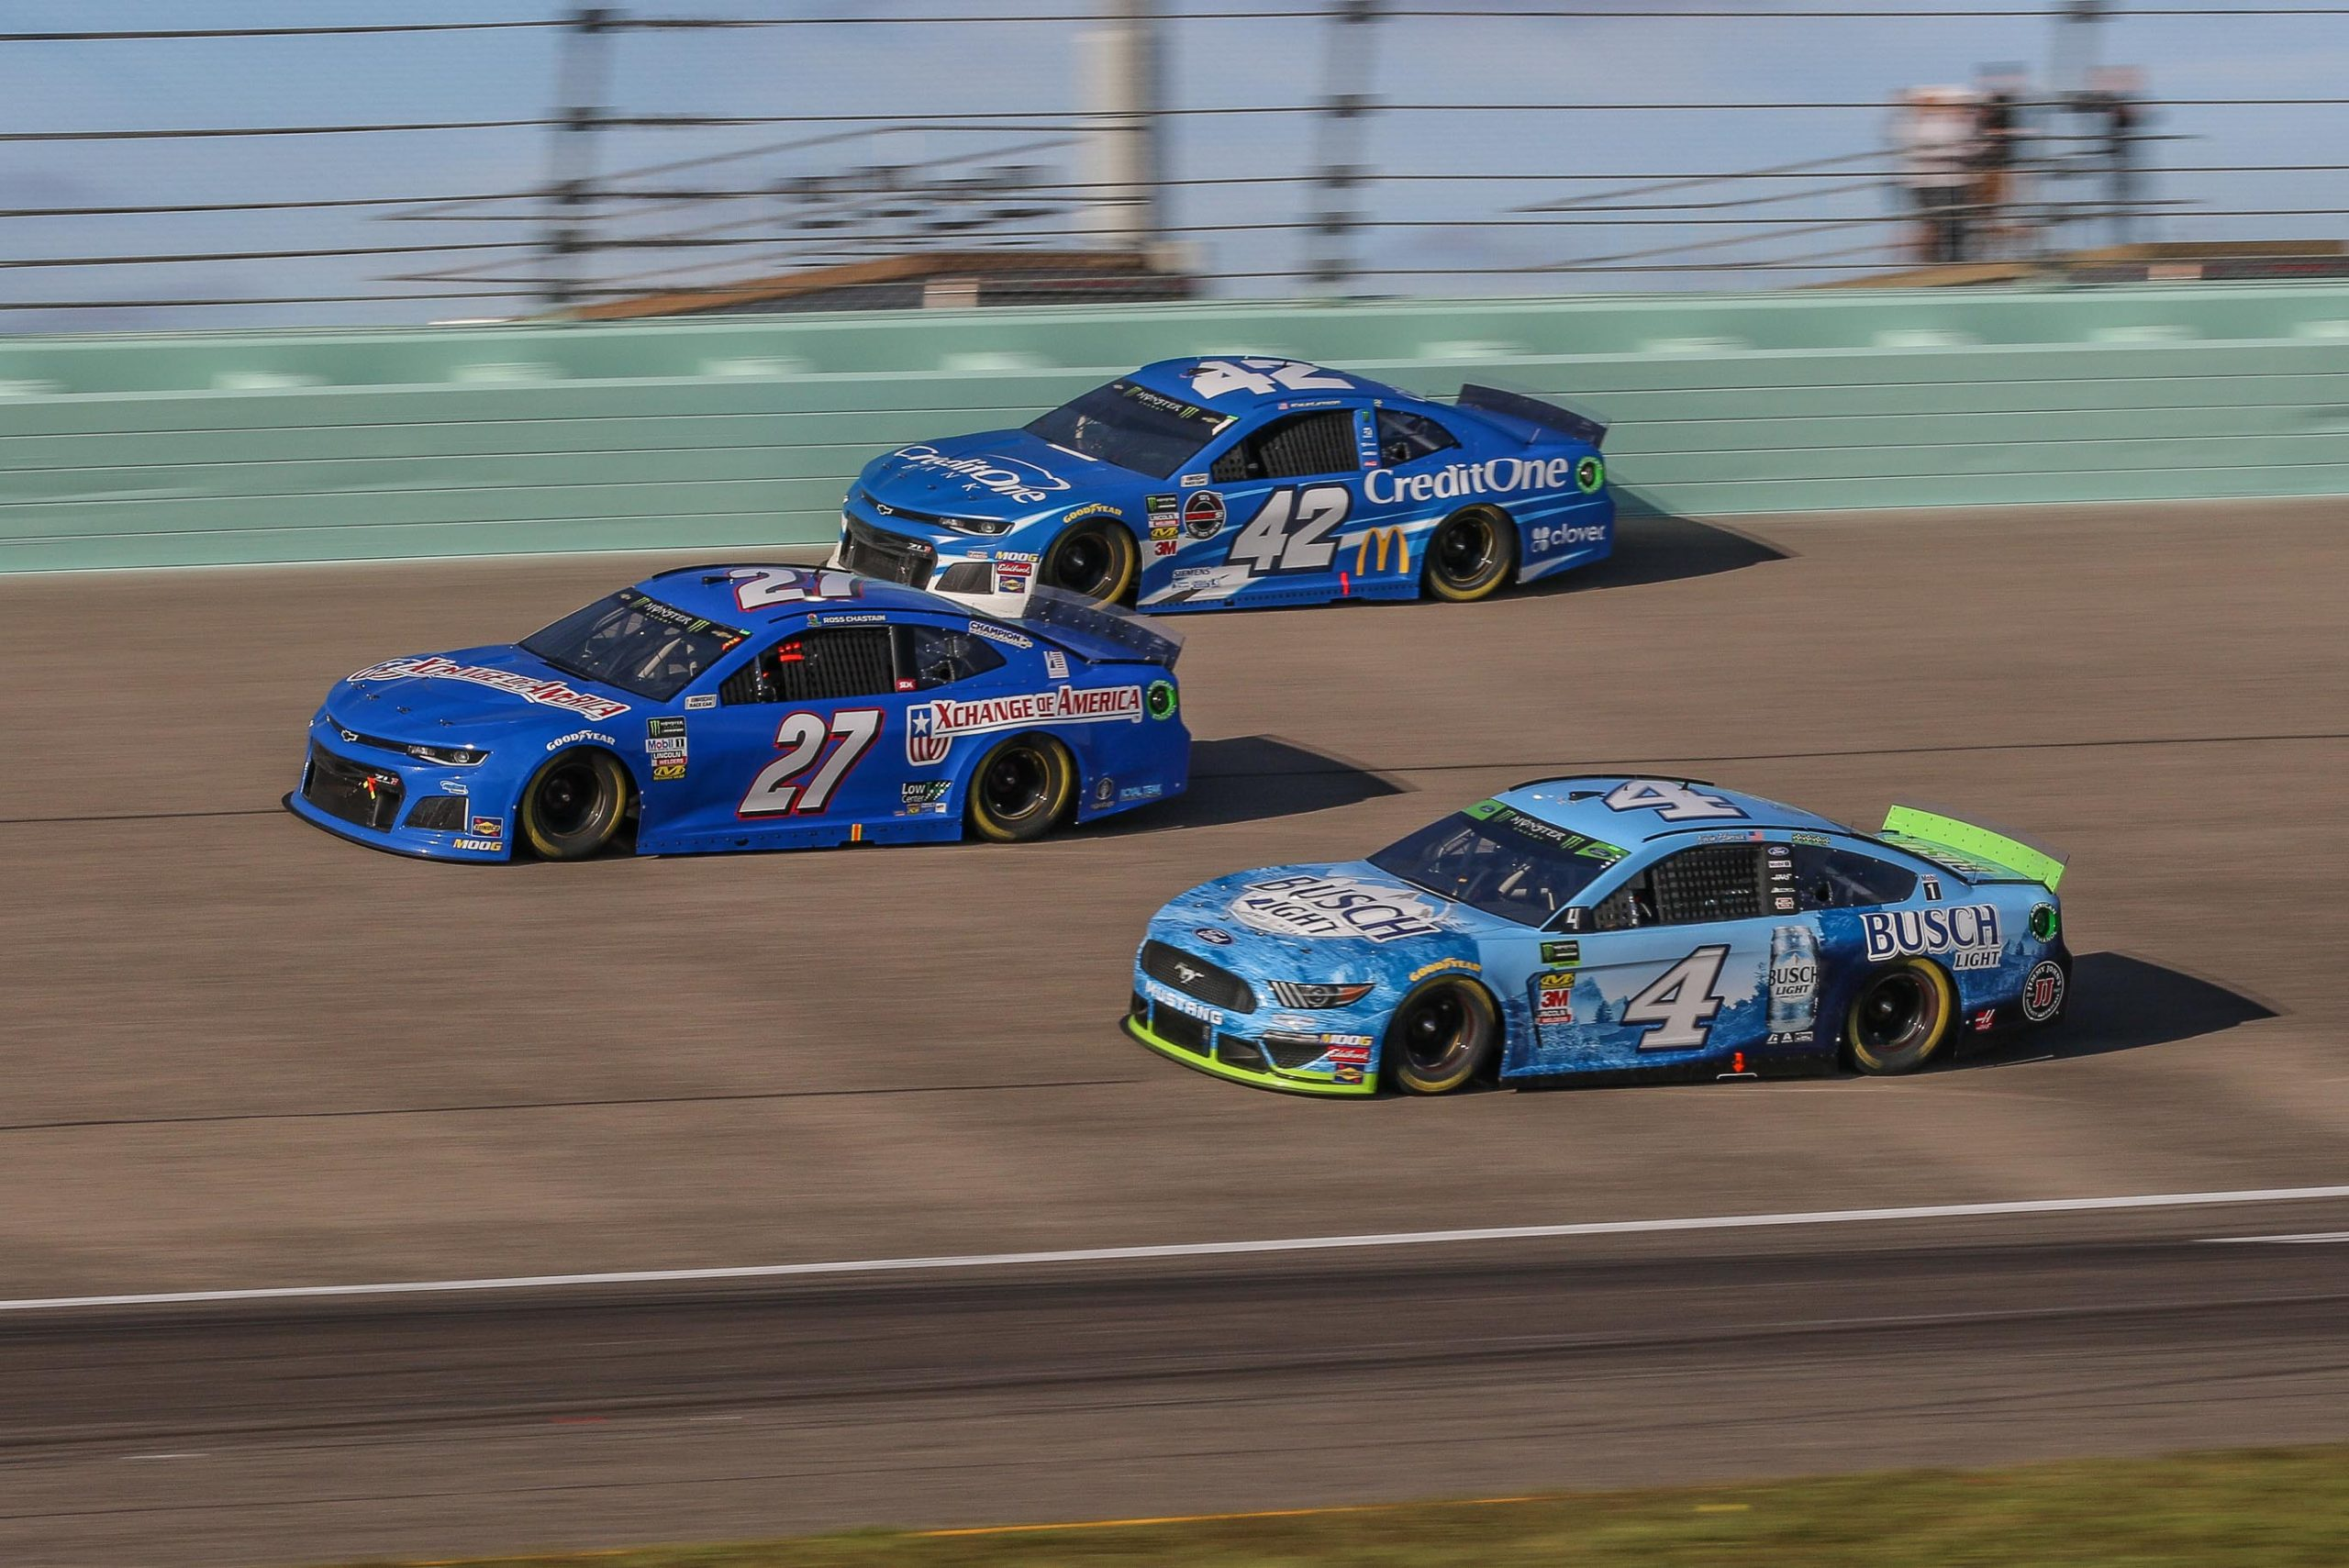 NASCAR news and notes for the week of 11-18